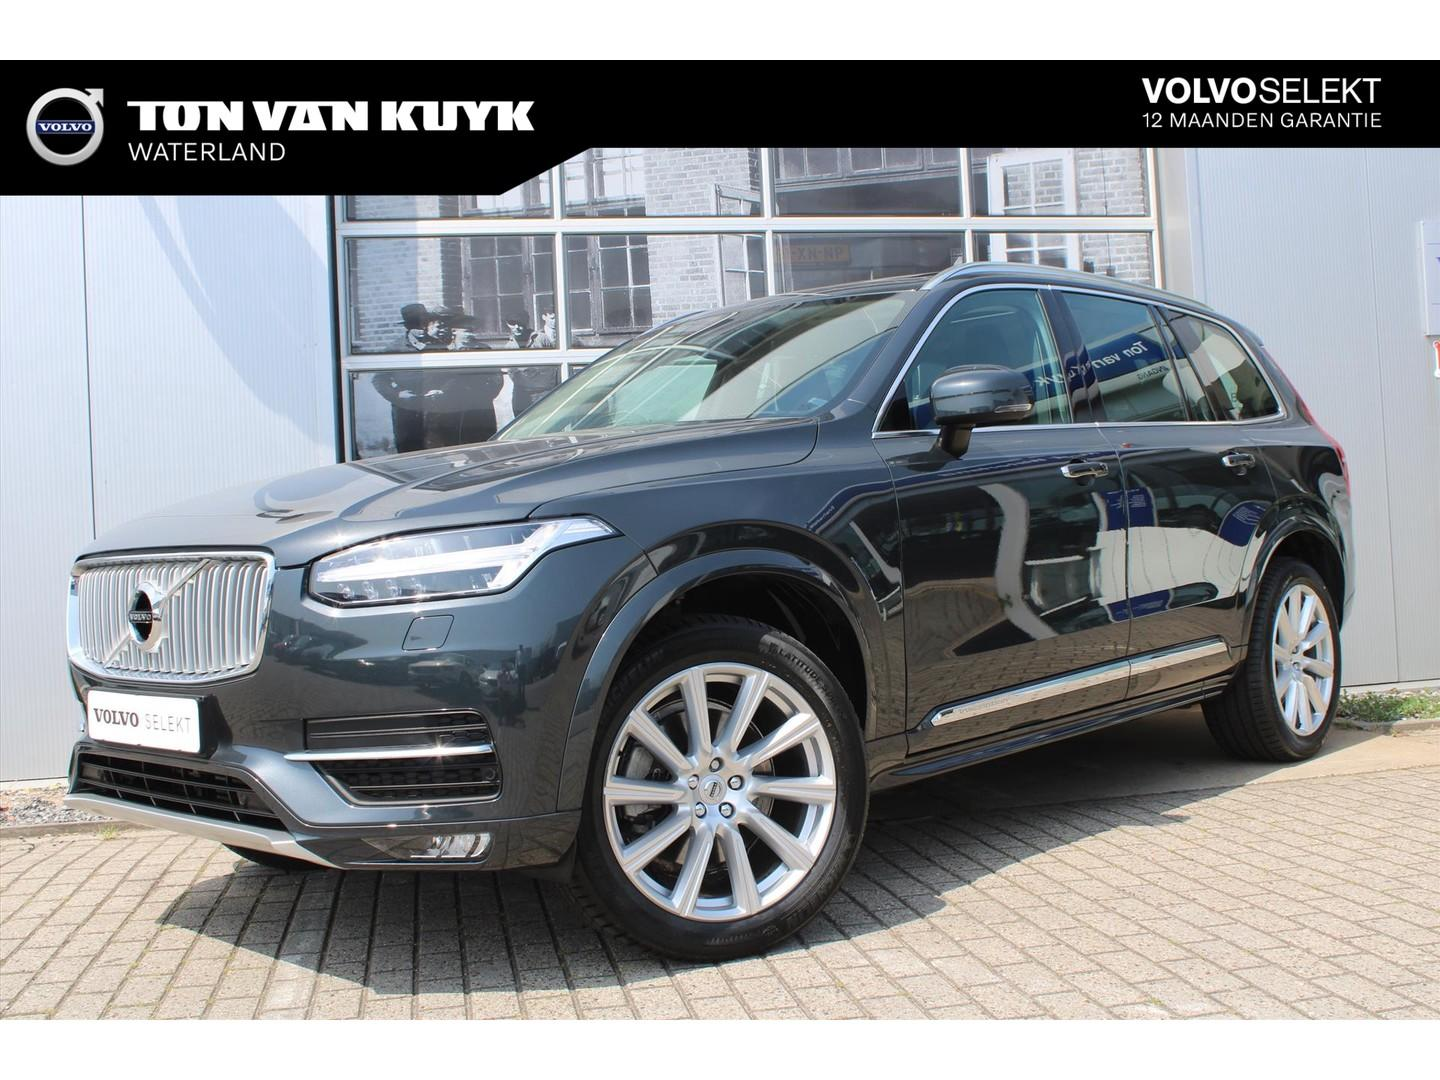 Volvo Xc90 T5 7p awd inscription / business pack connect / luxury line /